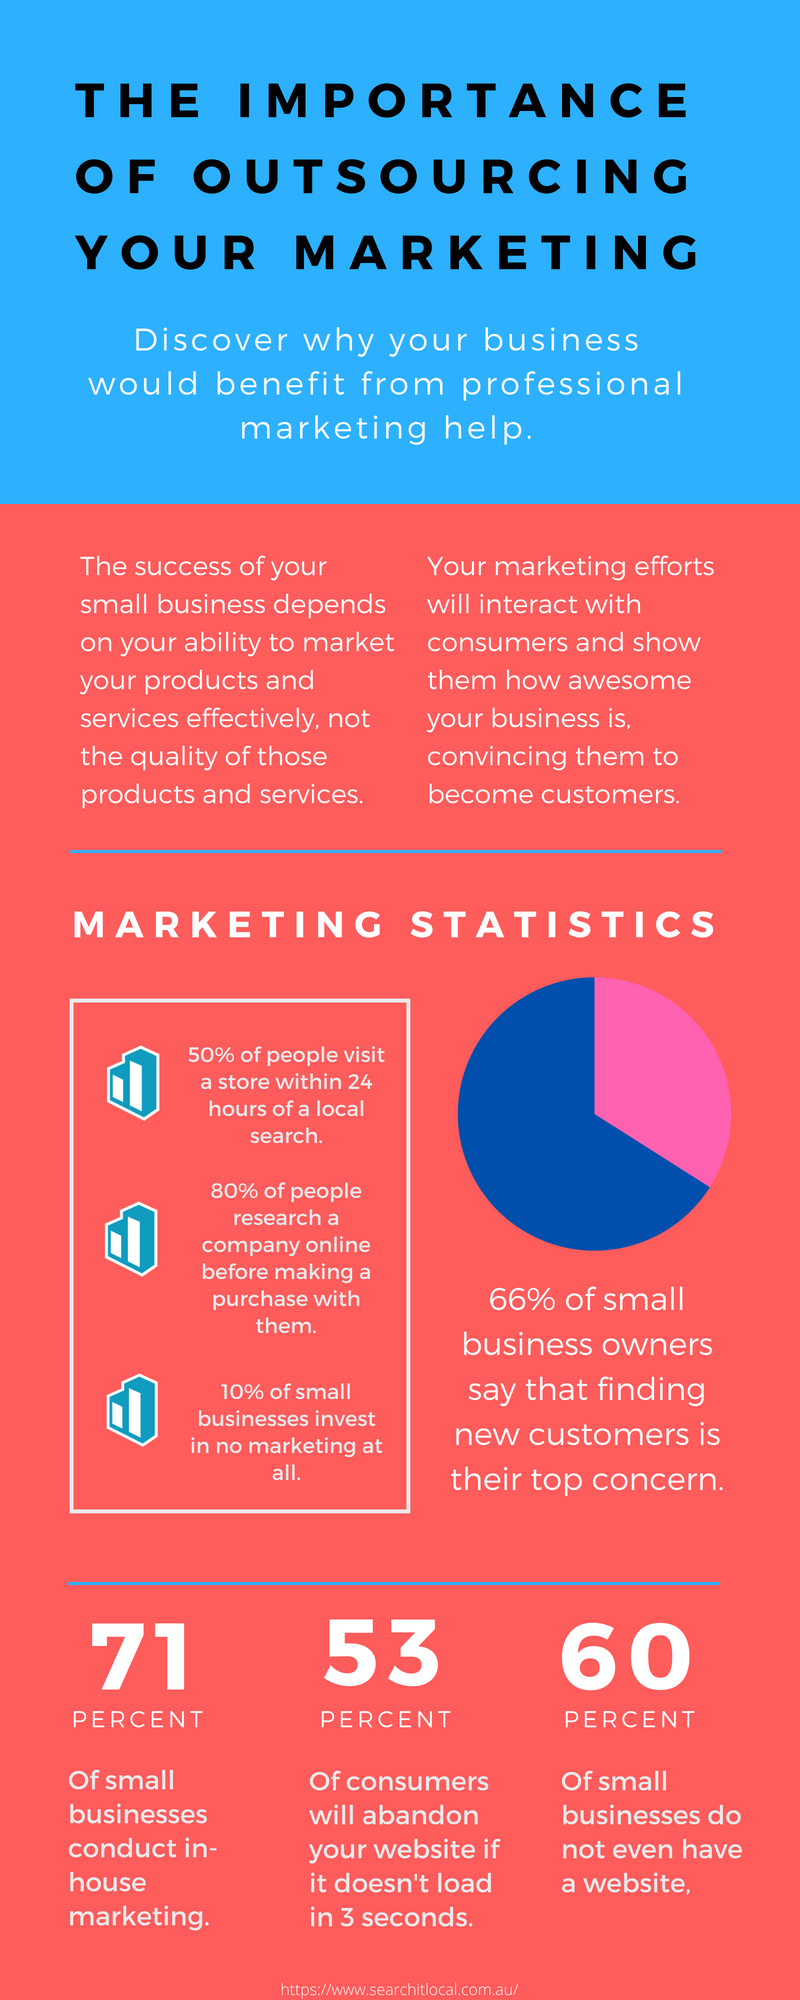 why outsourcing marketing is important infographic